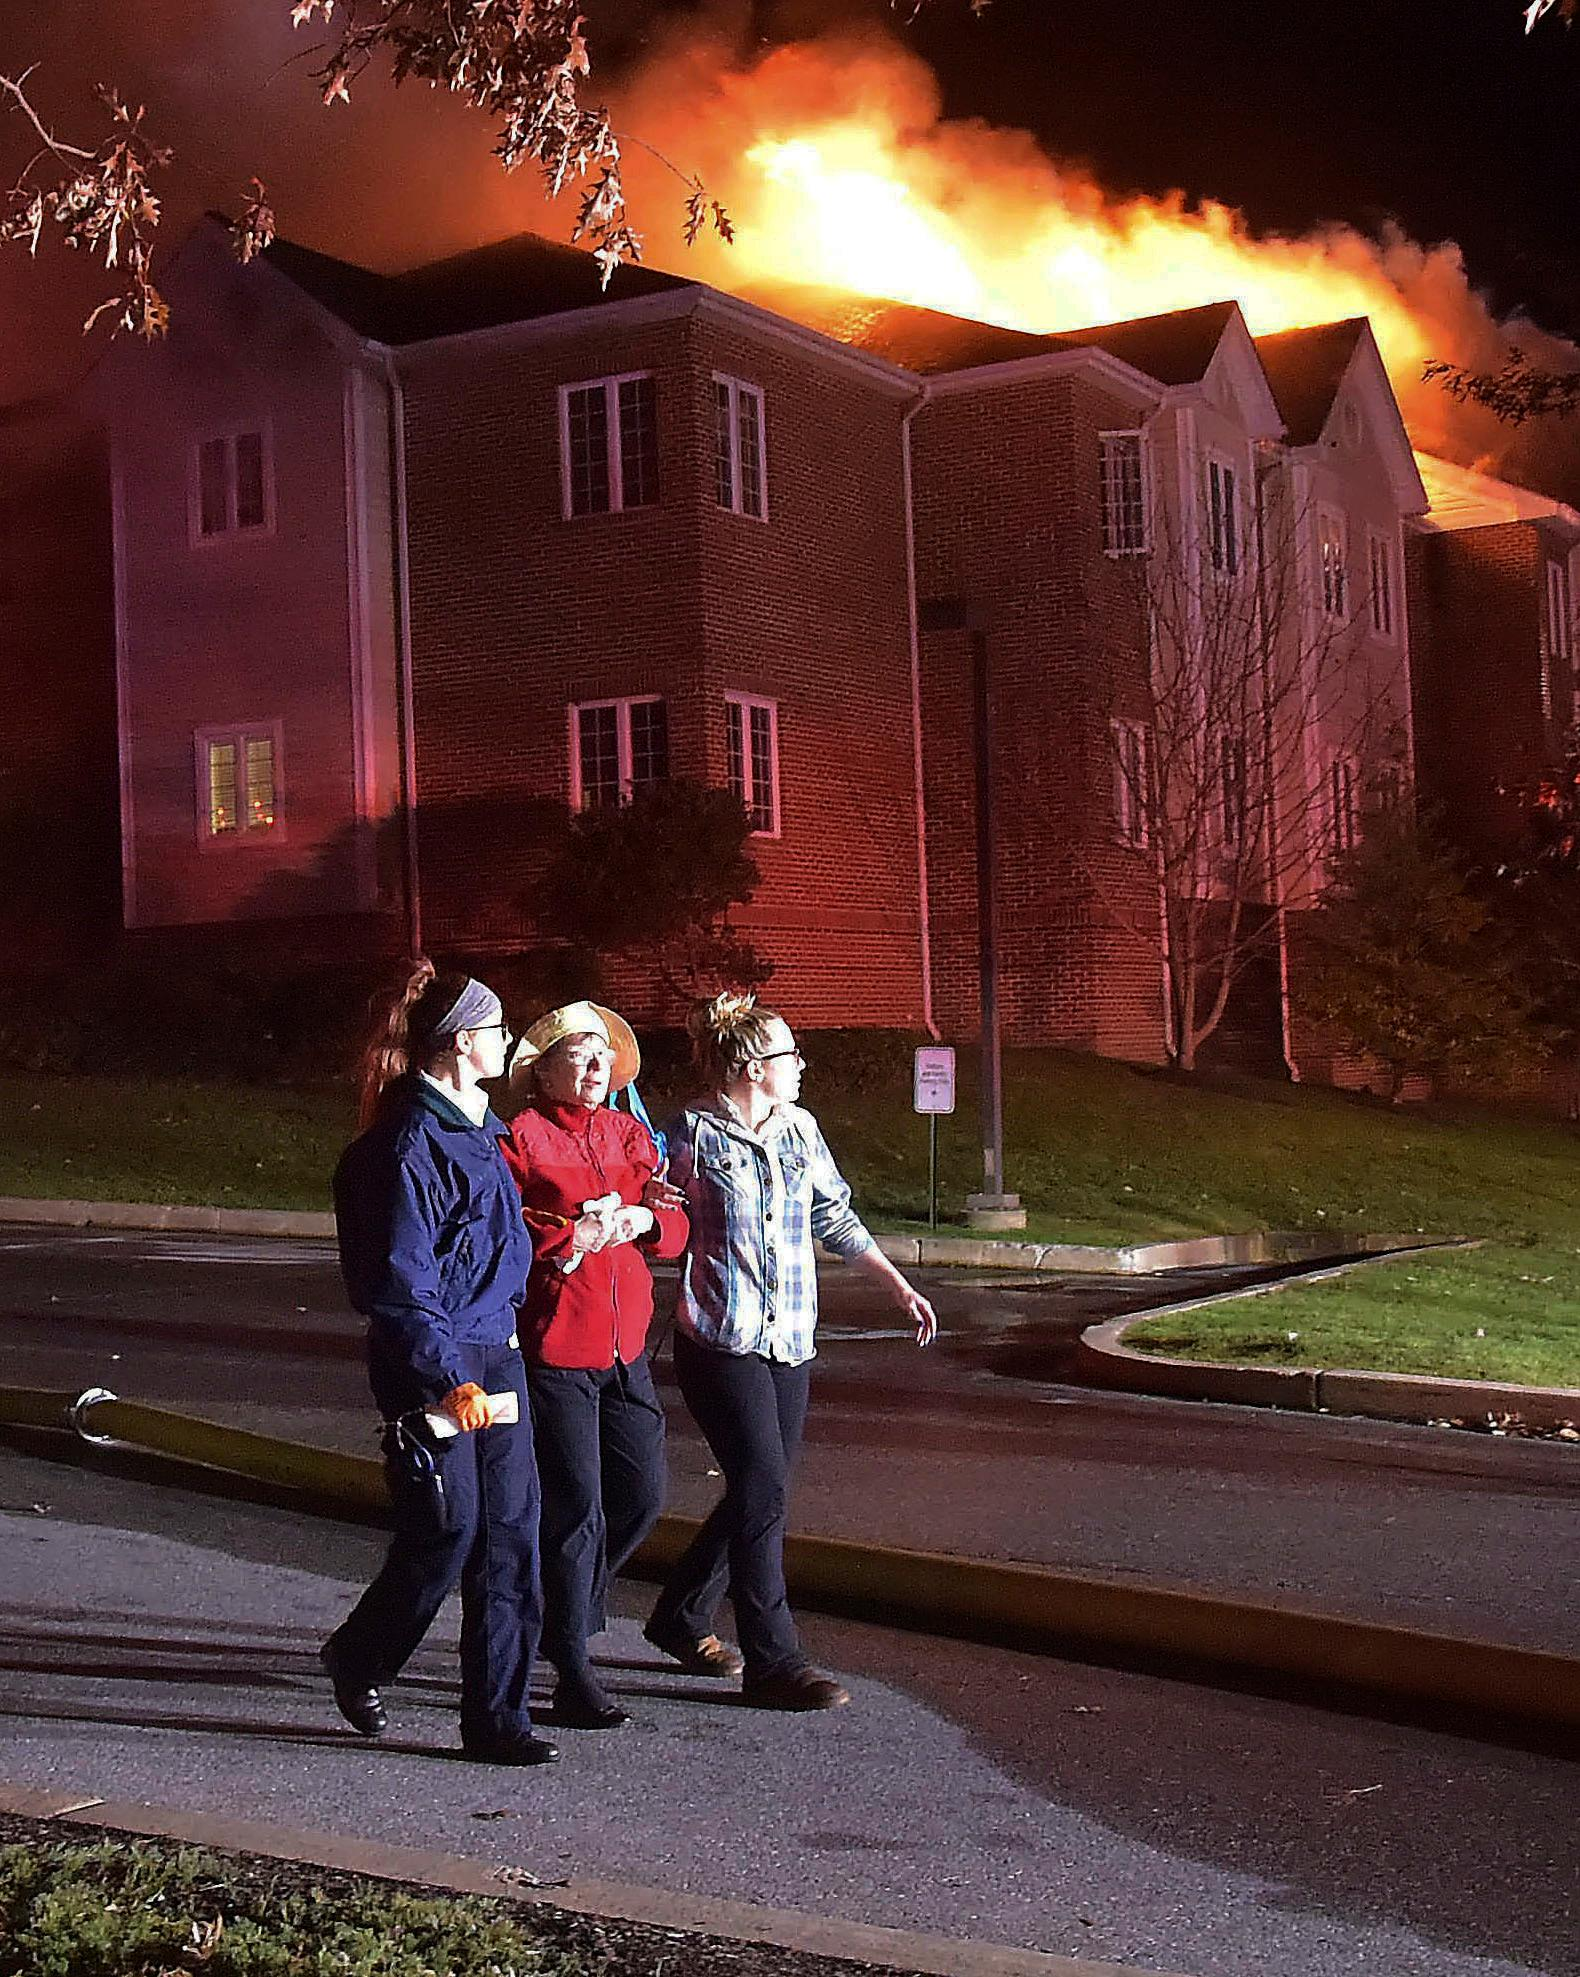 A resident of the Barclay Friends Senior Living Community is assisted away from the scene of a fire as the senior care facility burned late Thursday night, Nov. 16, 2017, in West Chester, Pa. The fire quickly spread to multiple buildings, forcing residents to evacuate outside into the cold. Chester County emergency officials say at least 20 people have been taken to area hospitals for treatment. (Pete Bannan/Daily Local News via AP)